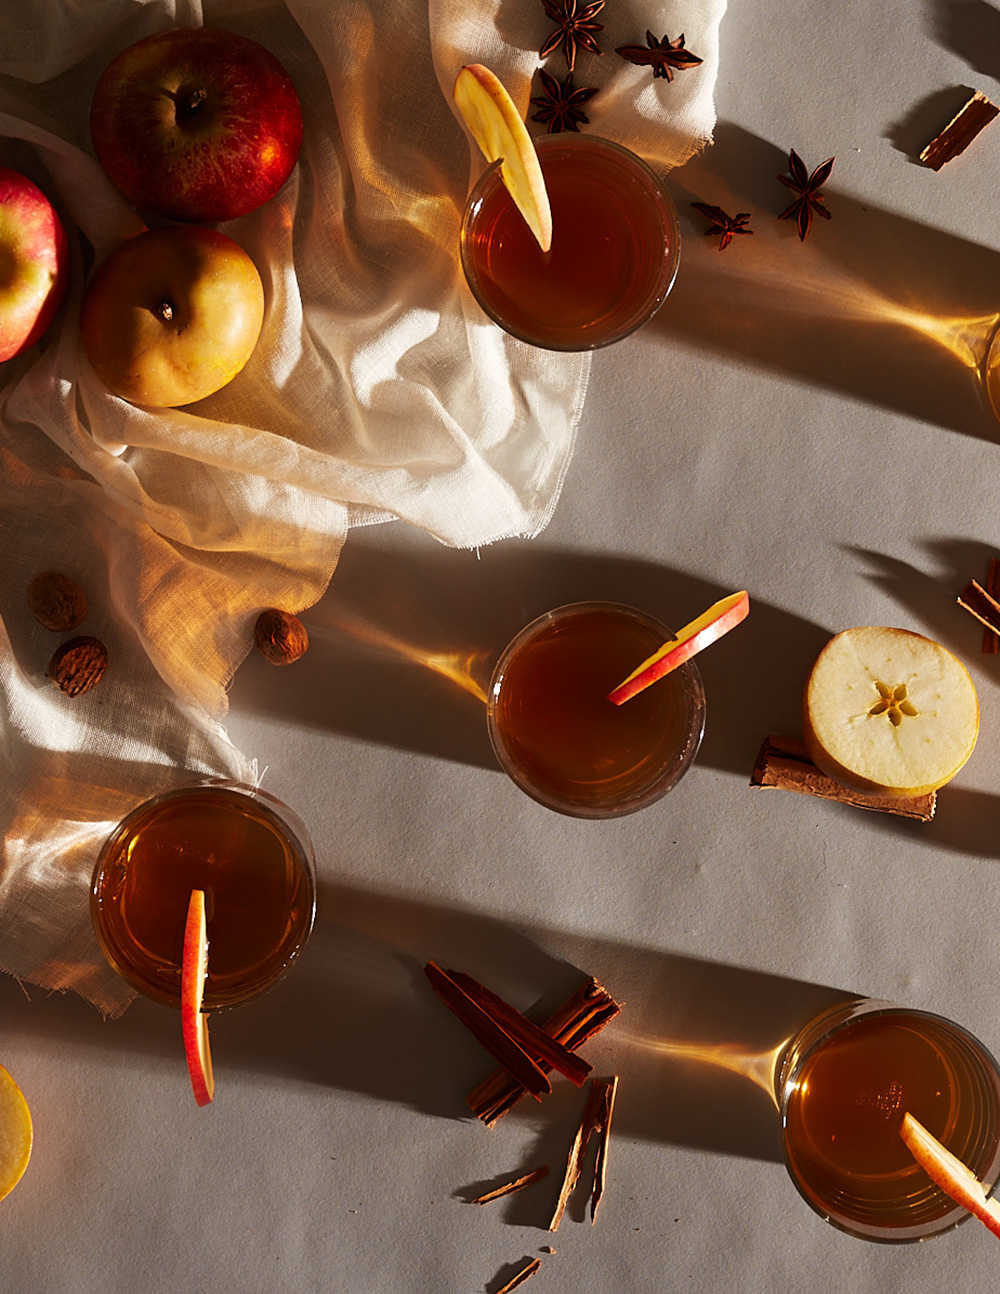 mulled-apple-cocktail-drink-prop-stylist-propstylist-lifestylestylist-drinkstylist-styling-lauren-becker-setdesigner.jpg